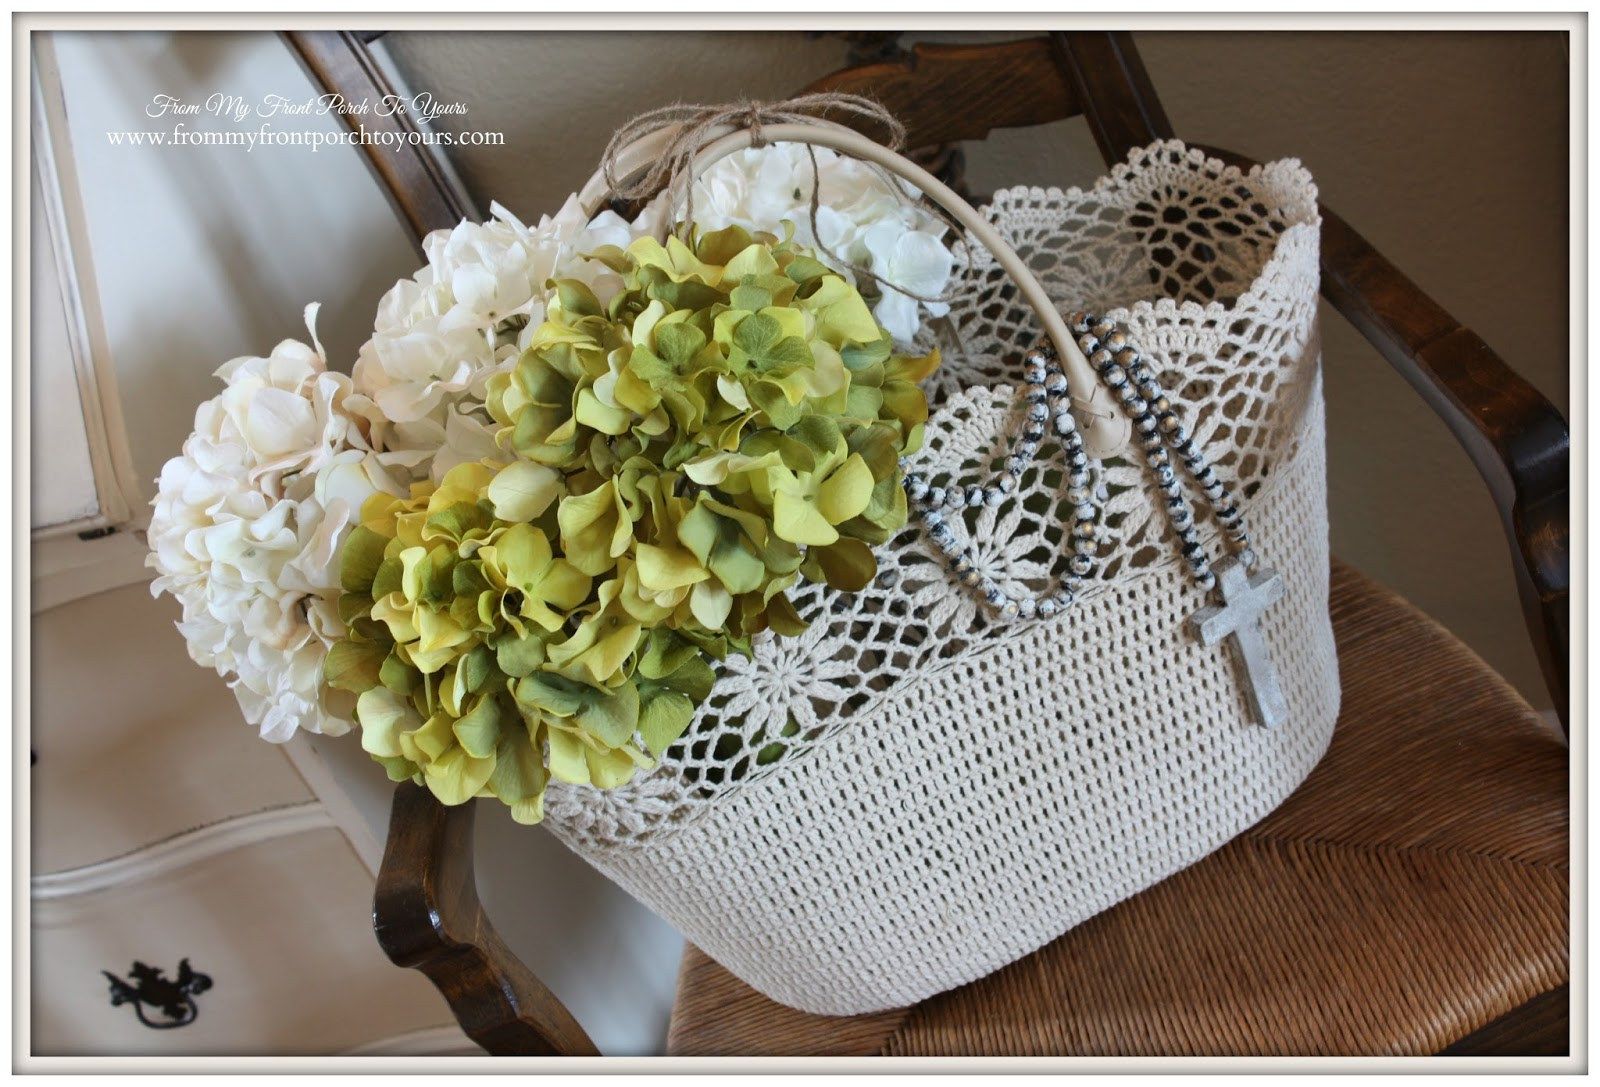 Faux Hydrangea Flowers from Hobby Lobby and Michaels add a spring feel over at From My Front Porch To Yours.